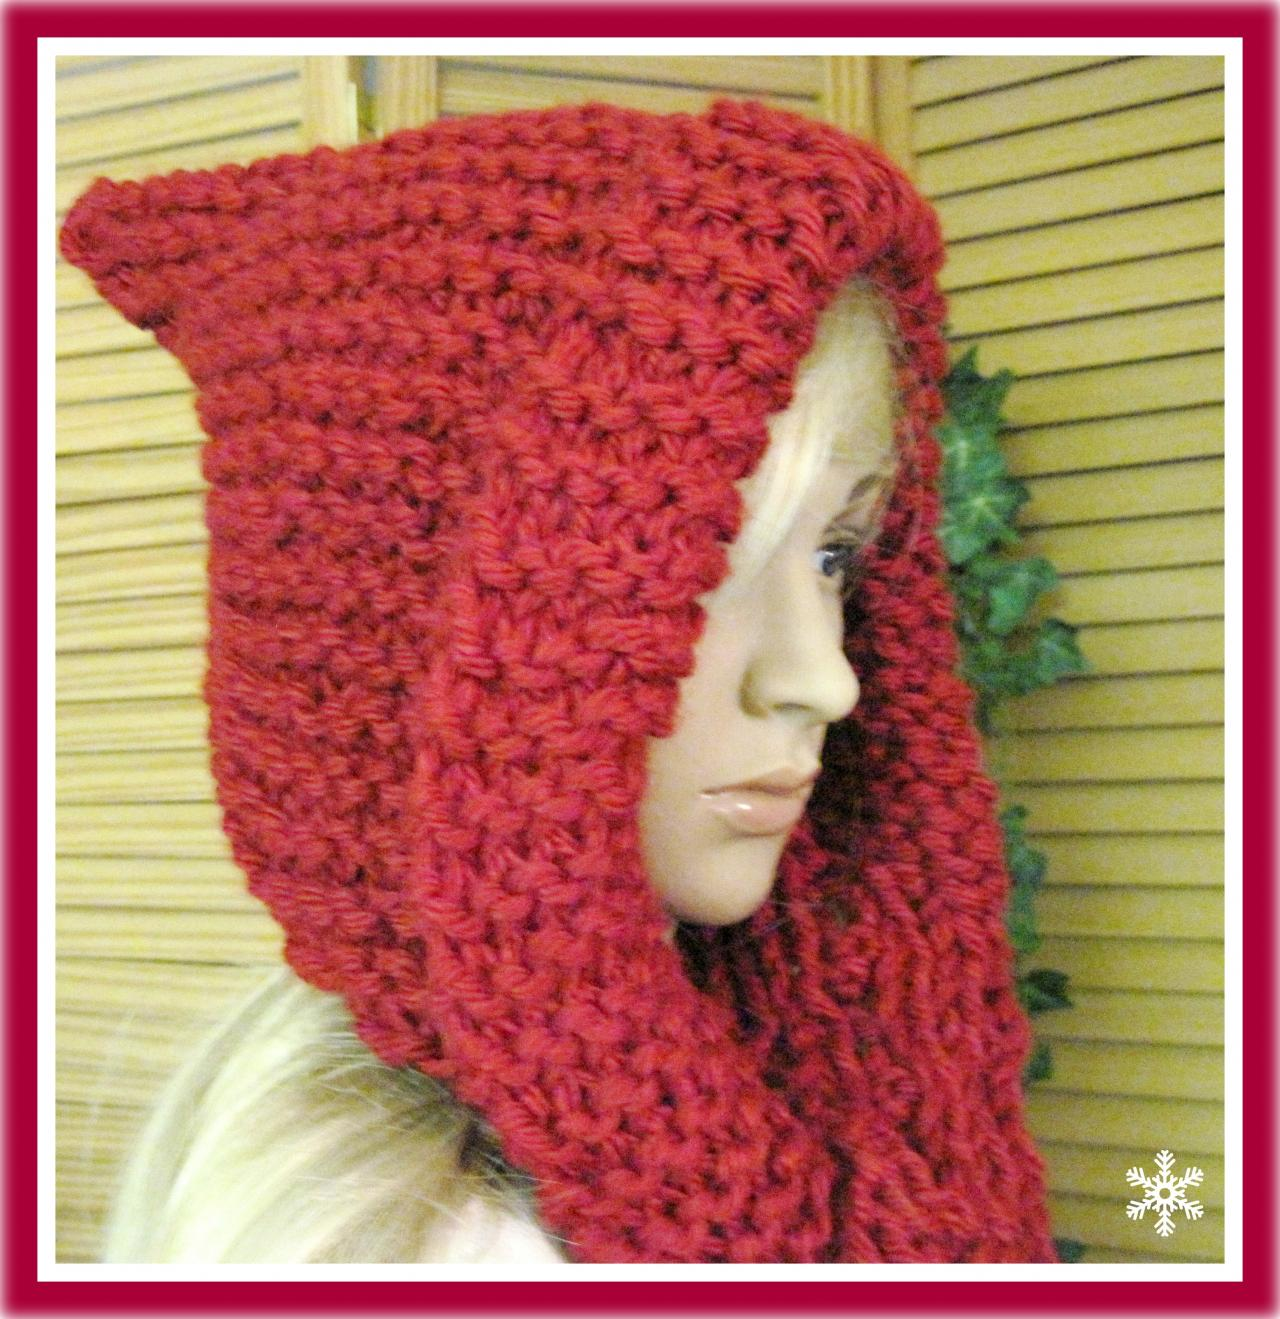 Little Red Riding Hood Hooded Scarf In Bulky Yarn Knitting Pattern